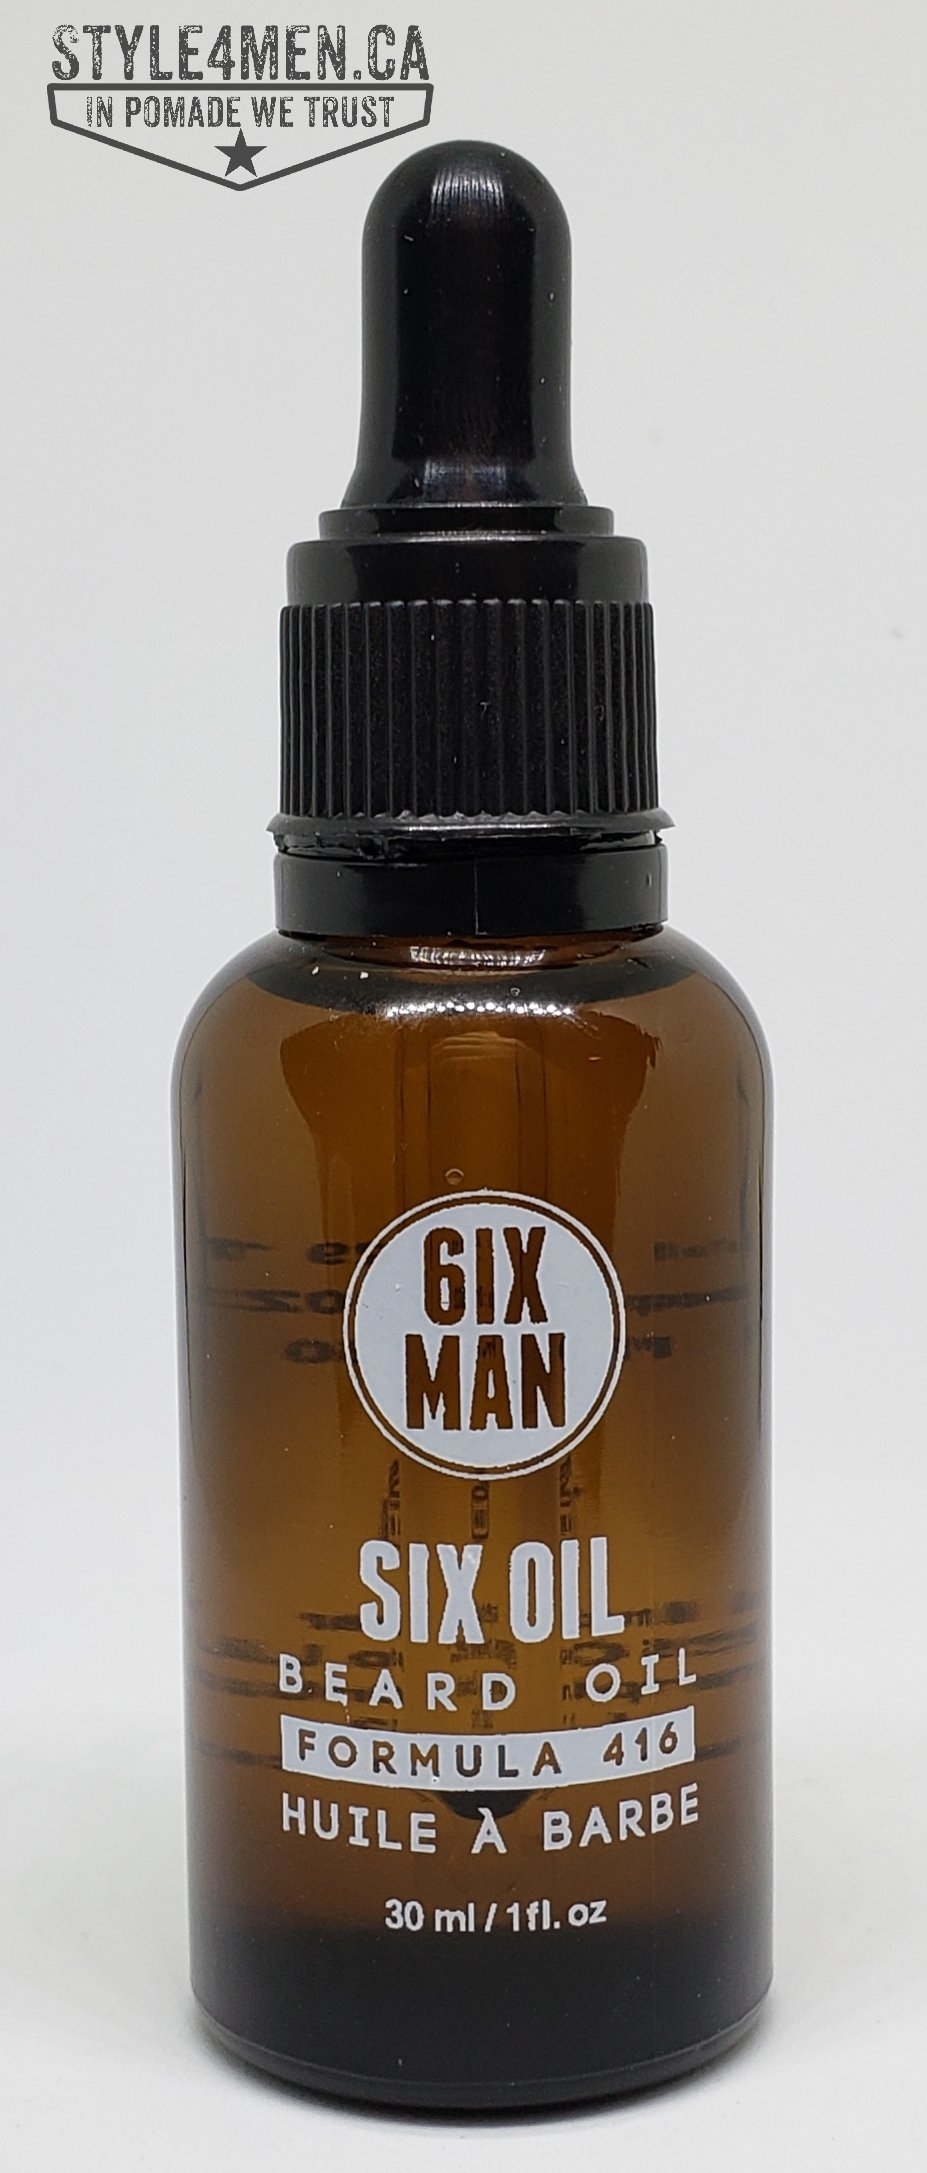 6IX MAN Beard Oil